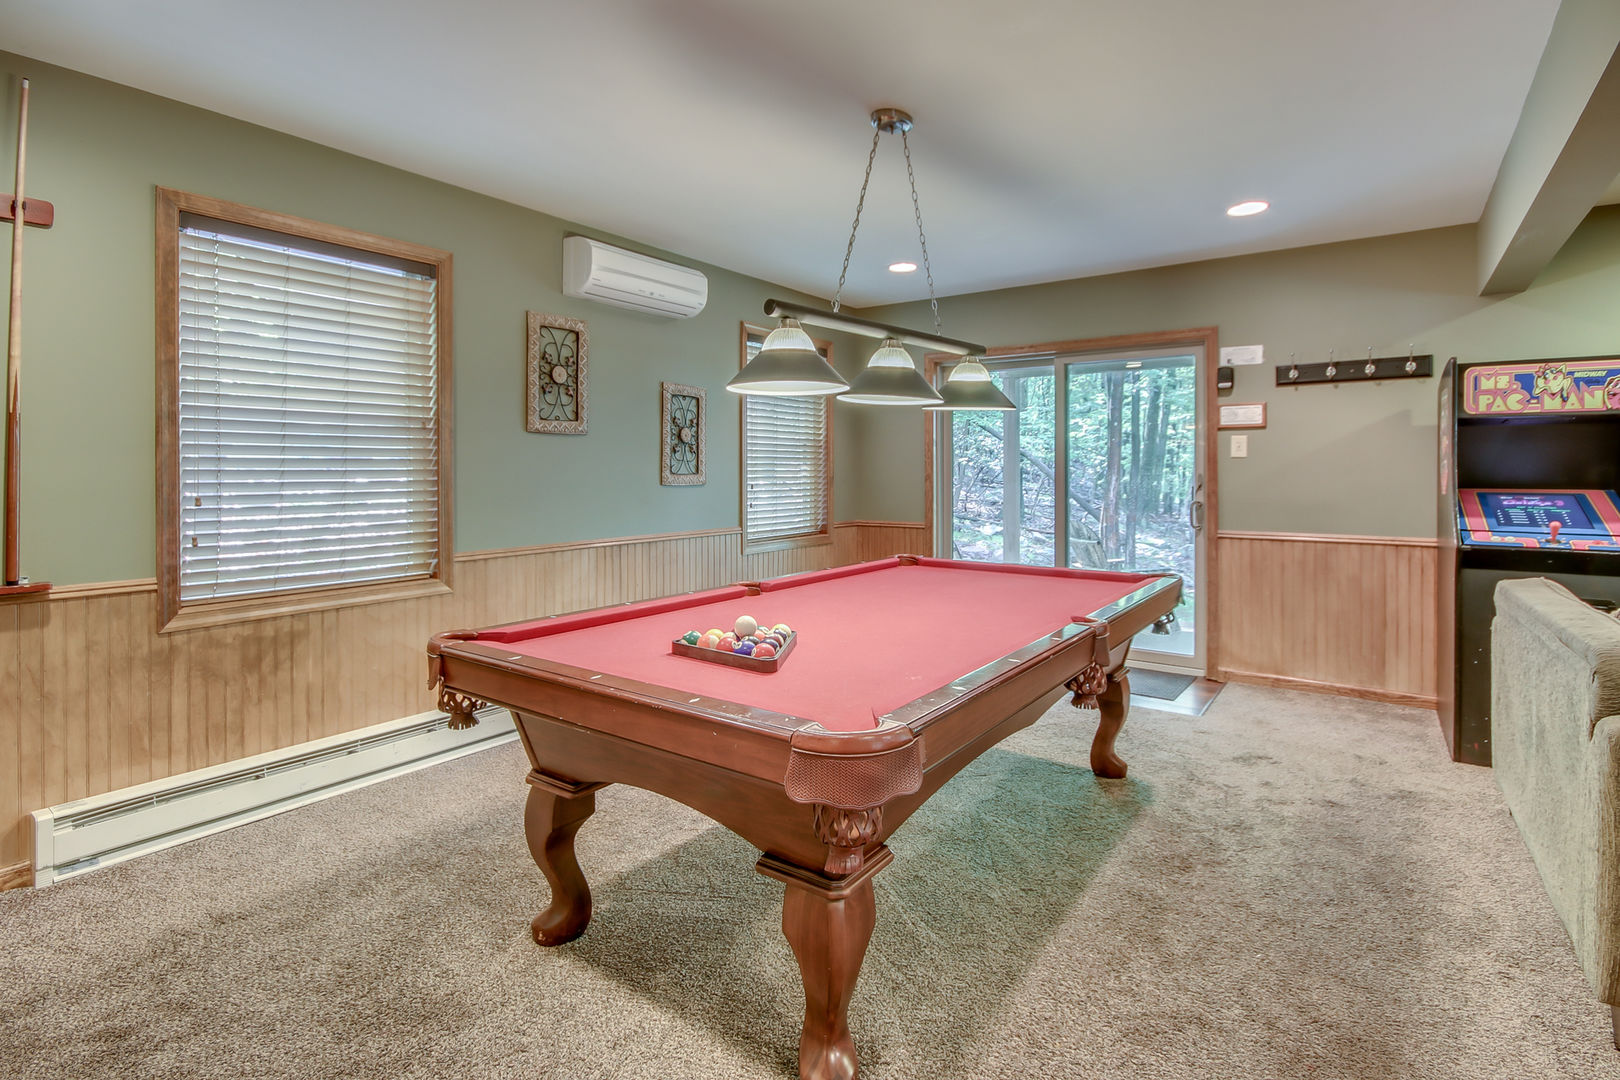 A Game Room Featuring Pool Table and Arcade Game.